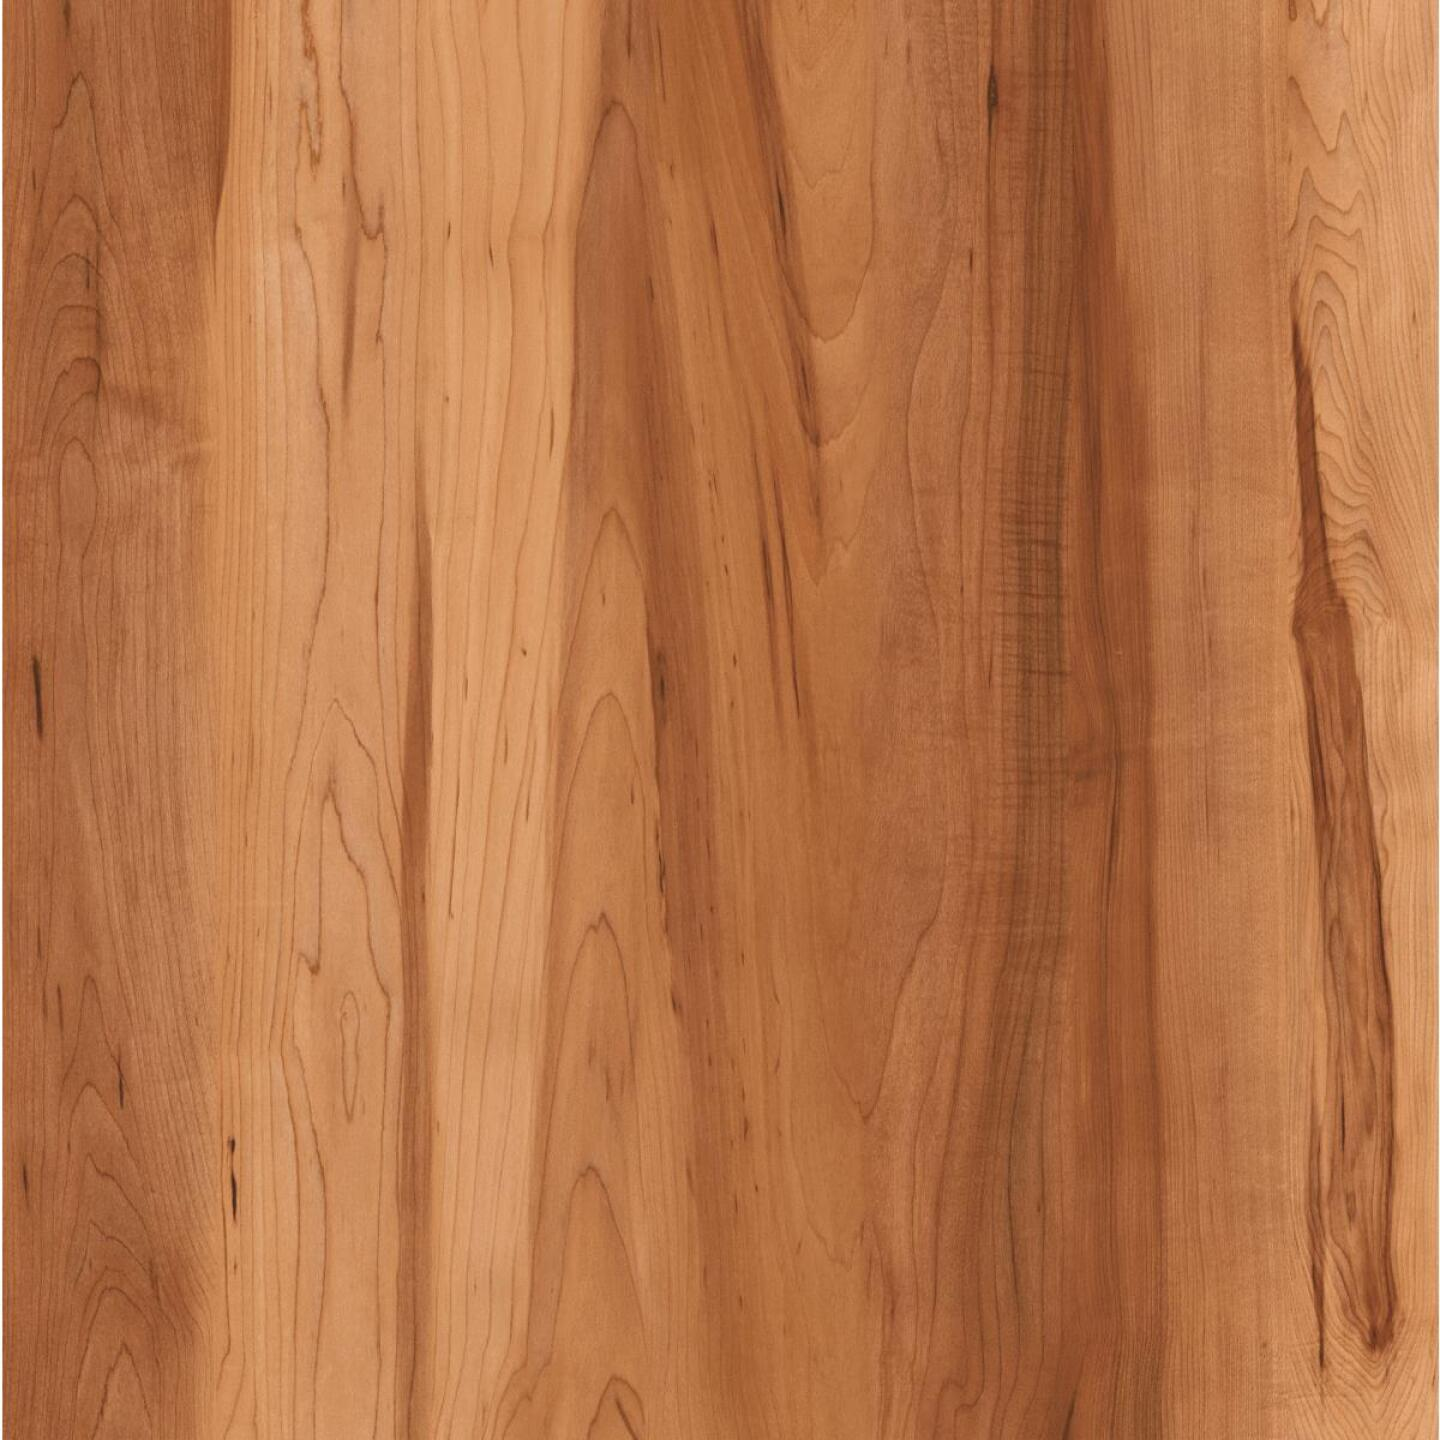 Balterio Right Step Ruby Maple 5.28 In. W x 49.72 In. L Laminate Flooring (21.86 Sq. Ft./Case) Image 1